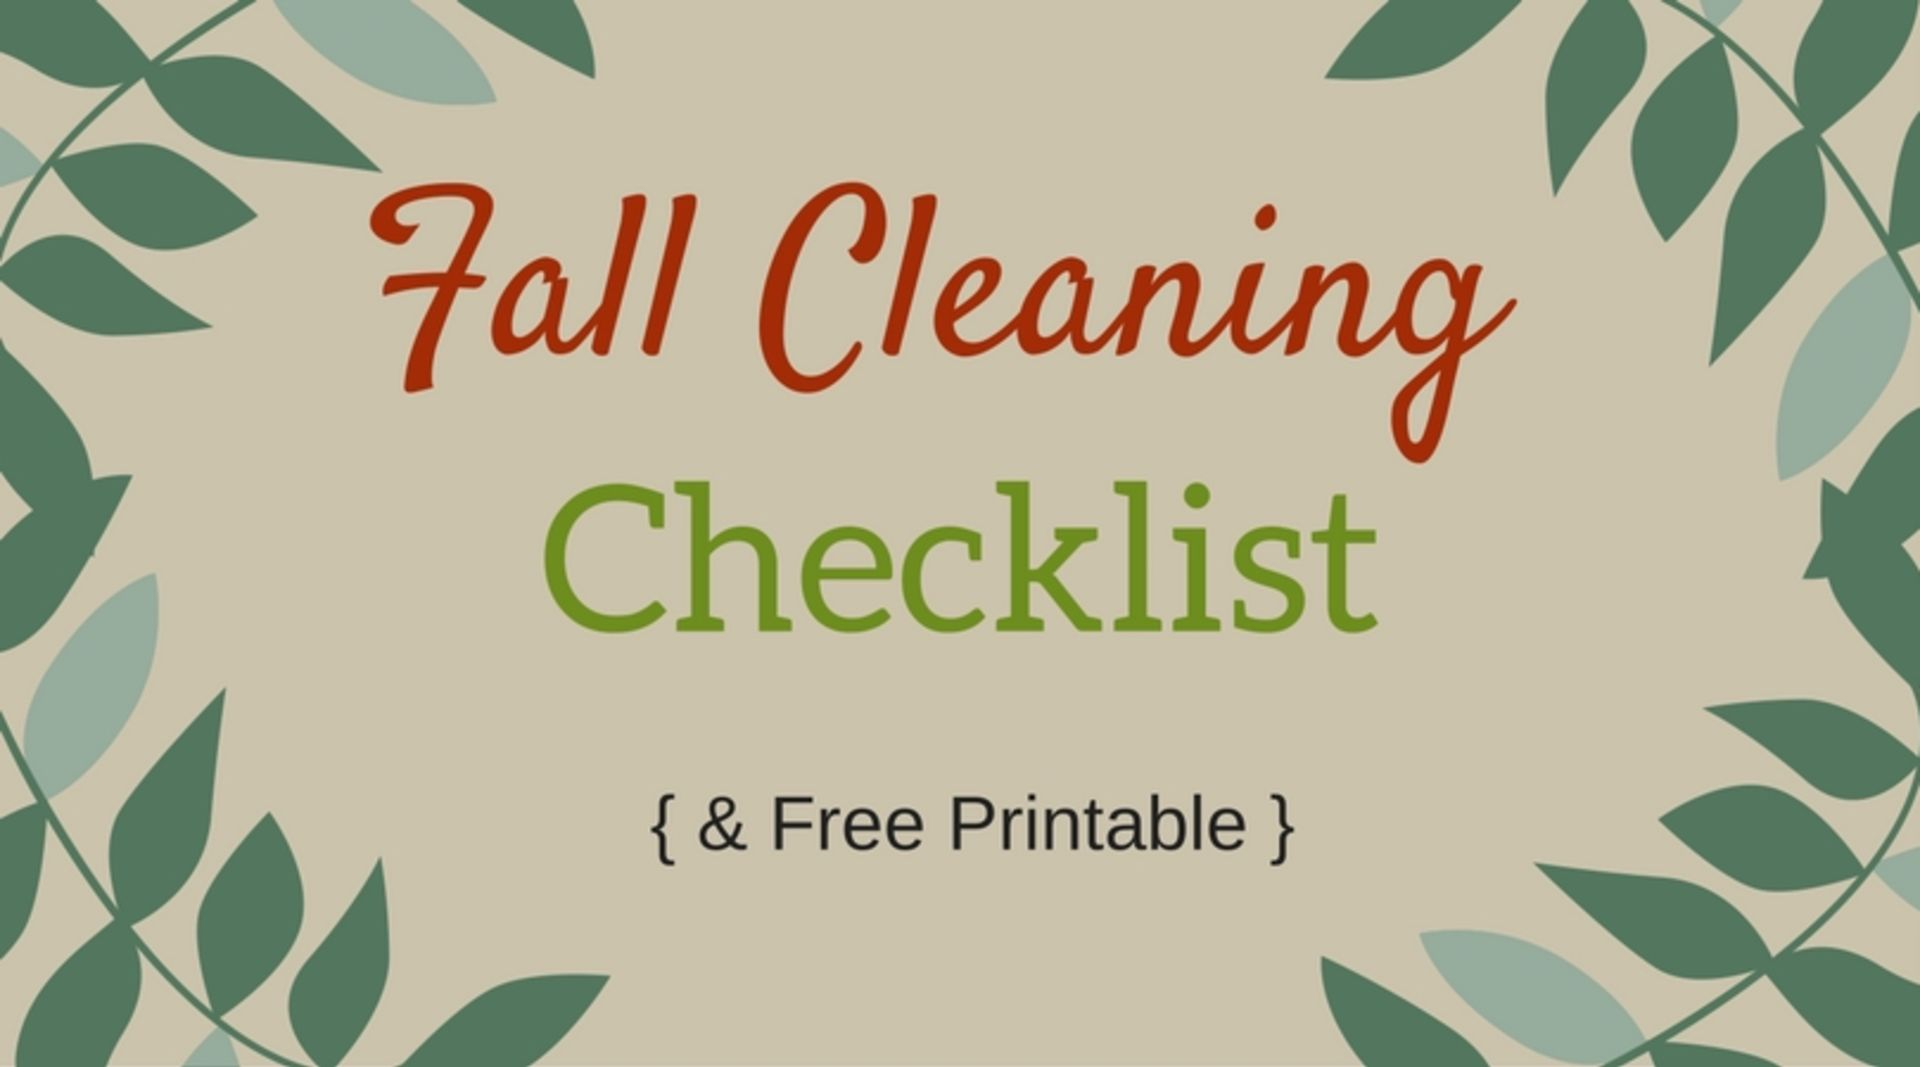 Full Fall Cleaning Checklist!